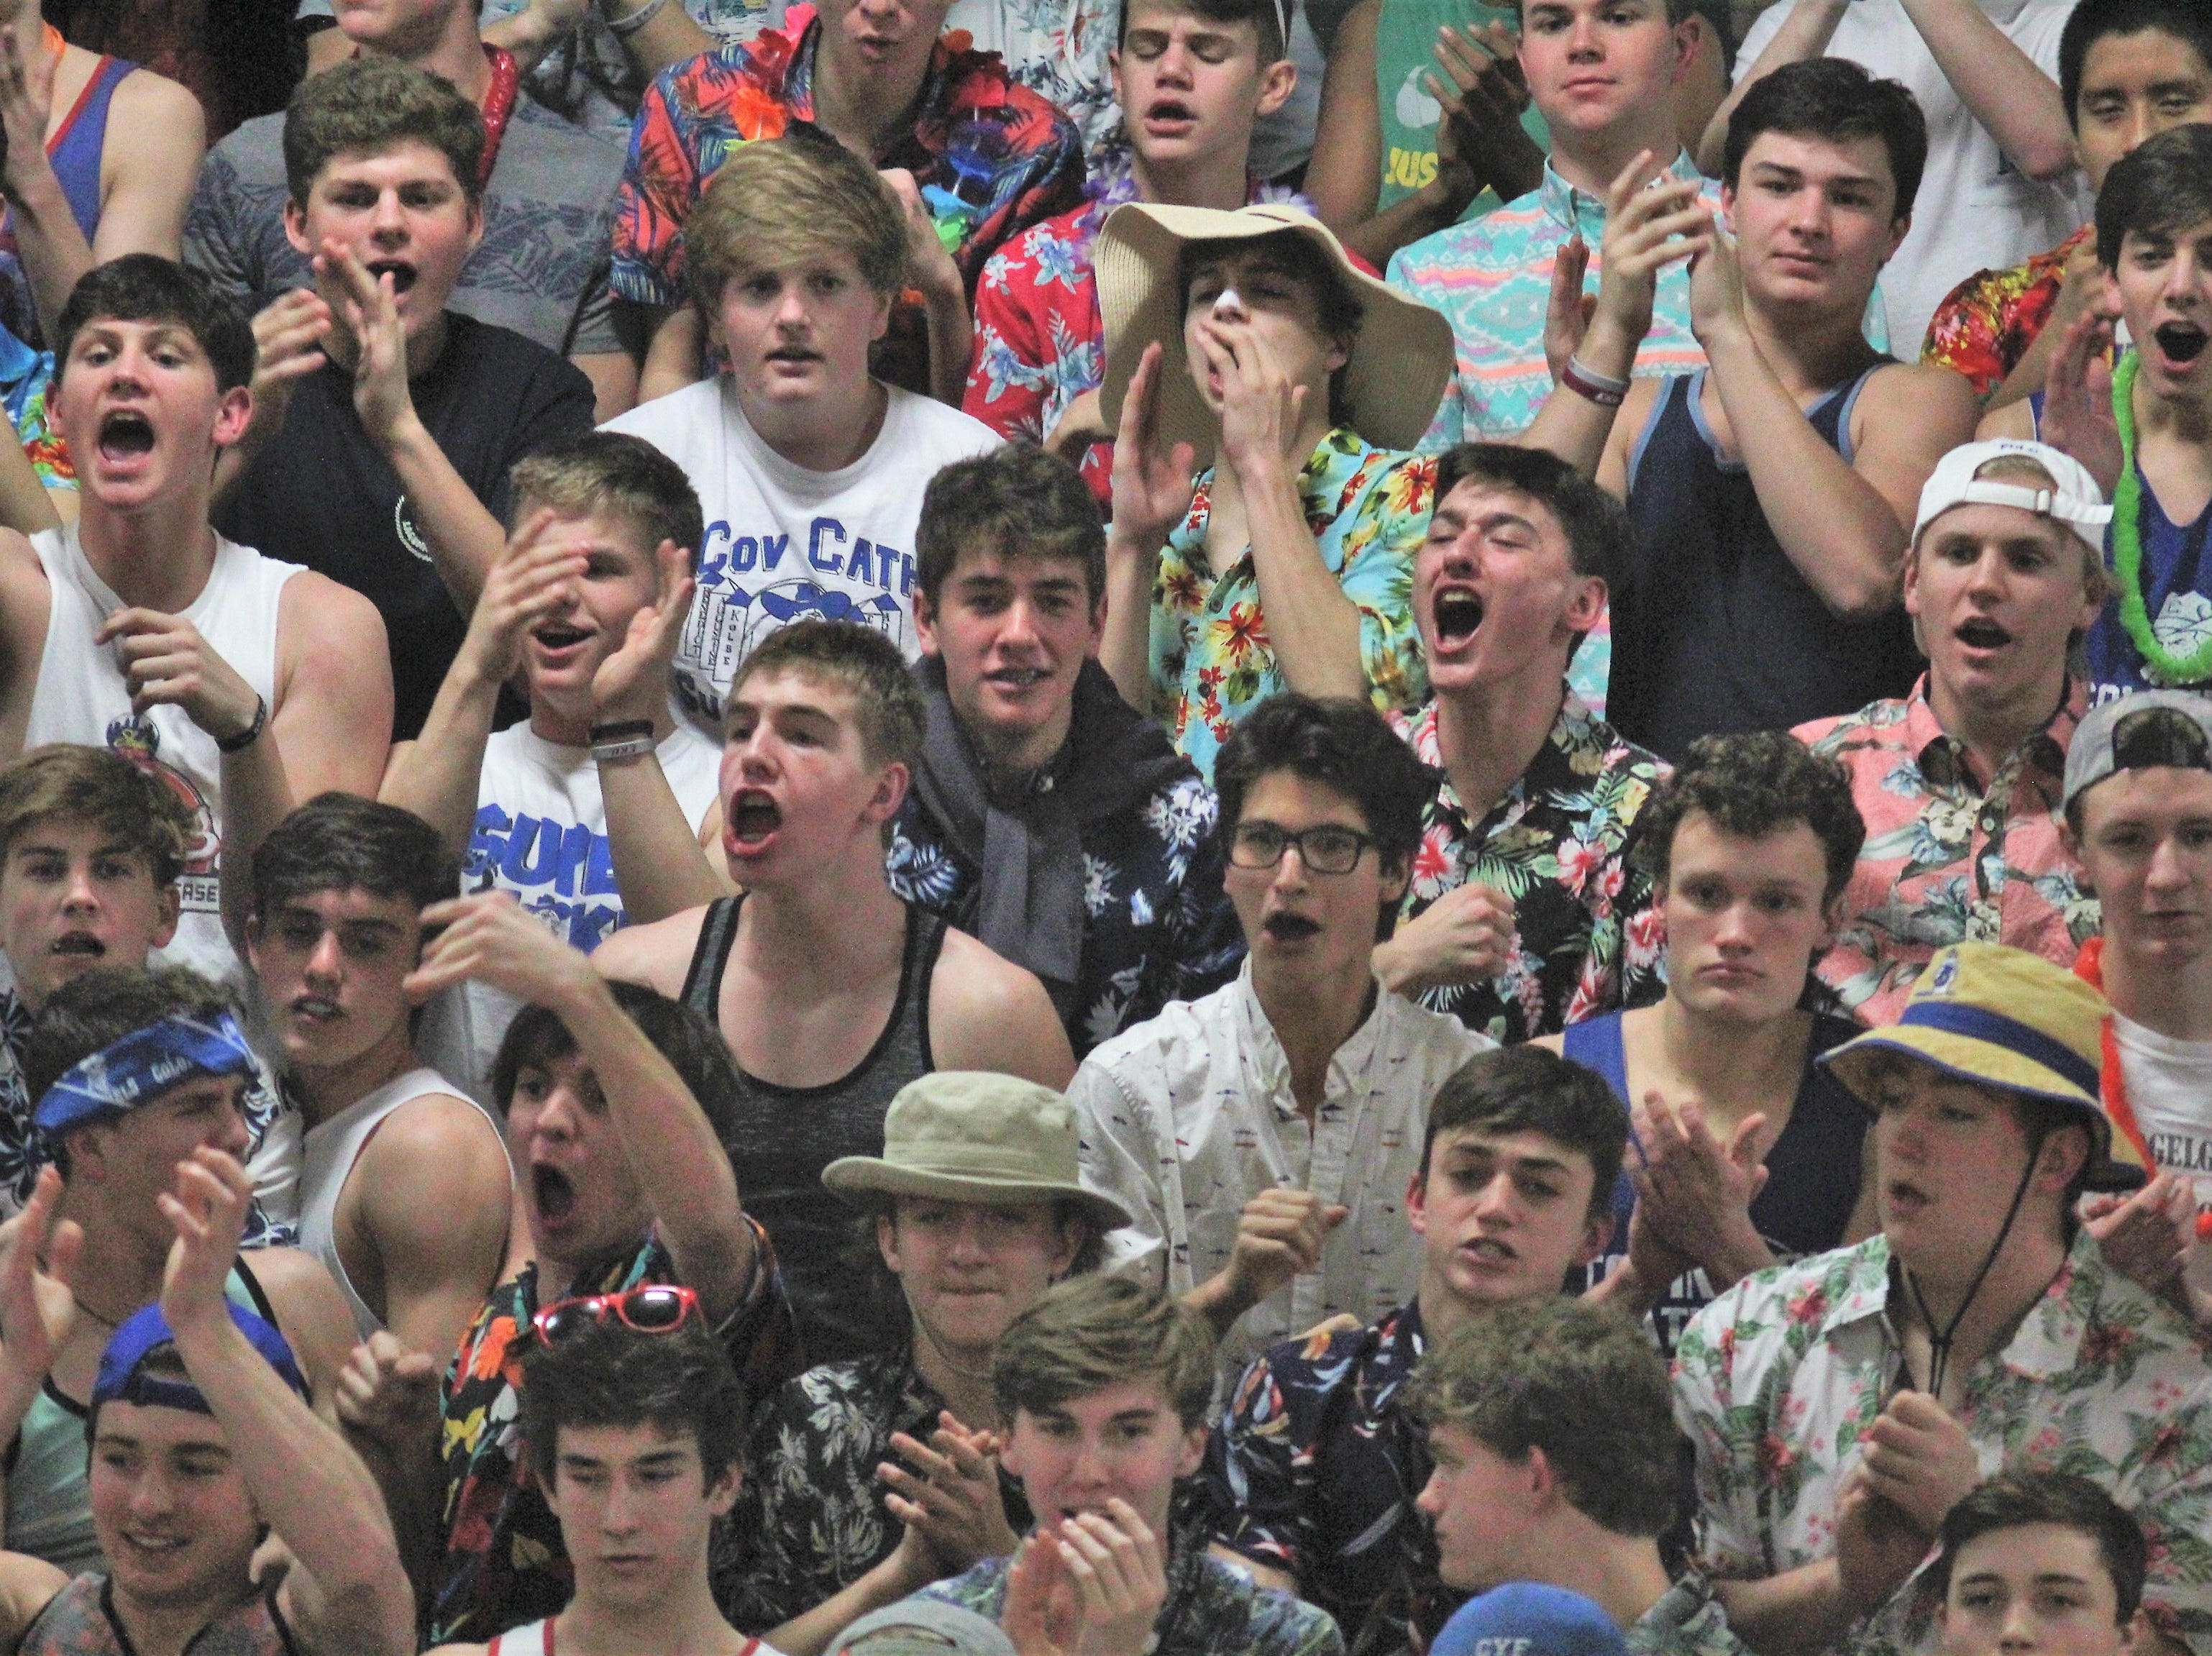 Covington Catholic students get into it as Covington Catholic defeats Cooper 53-47 in boys basketball Jan. 11, 2019 at CovCath.